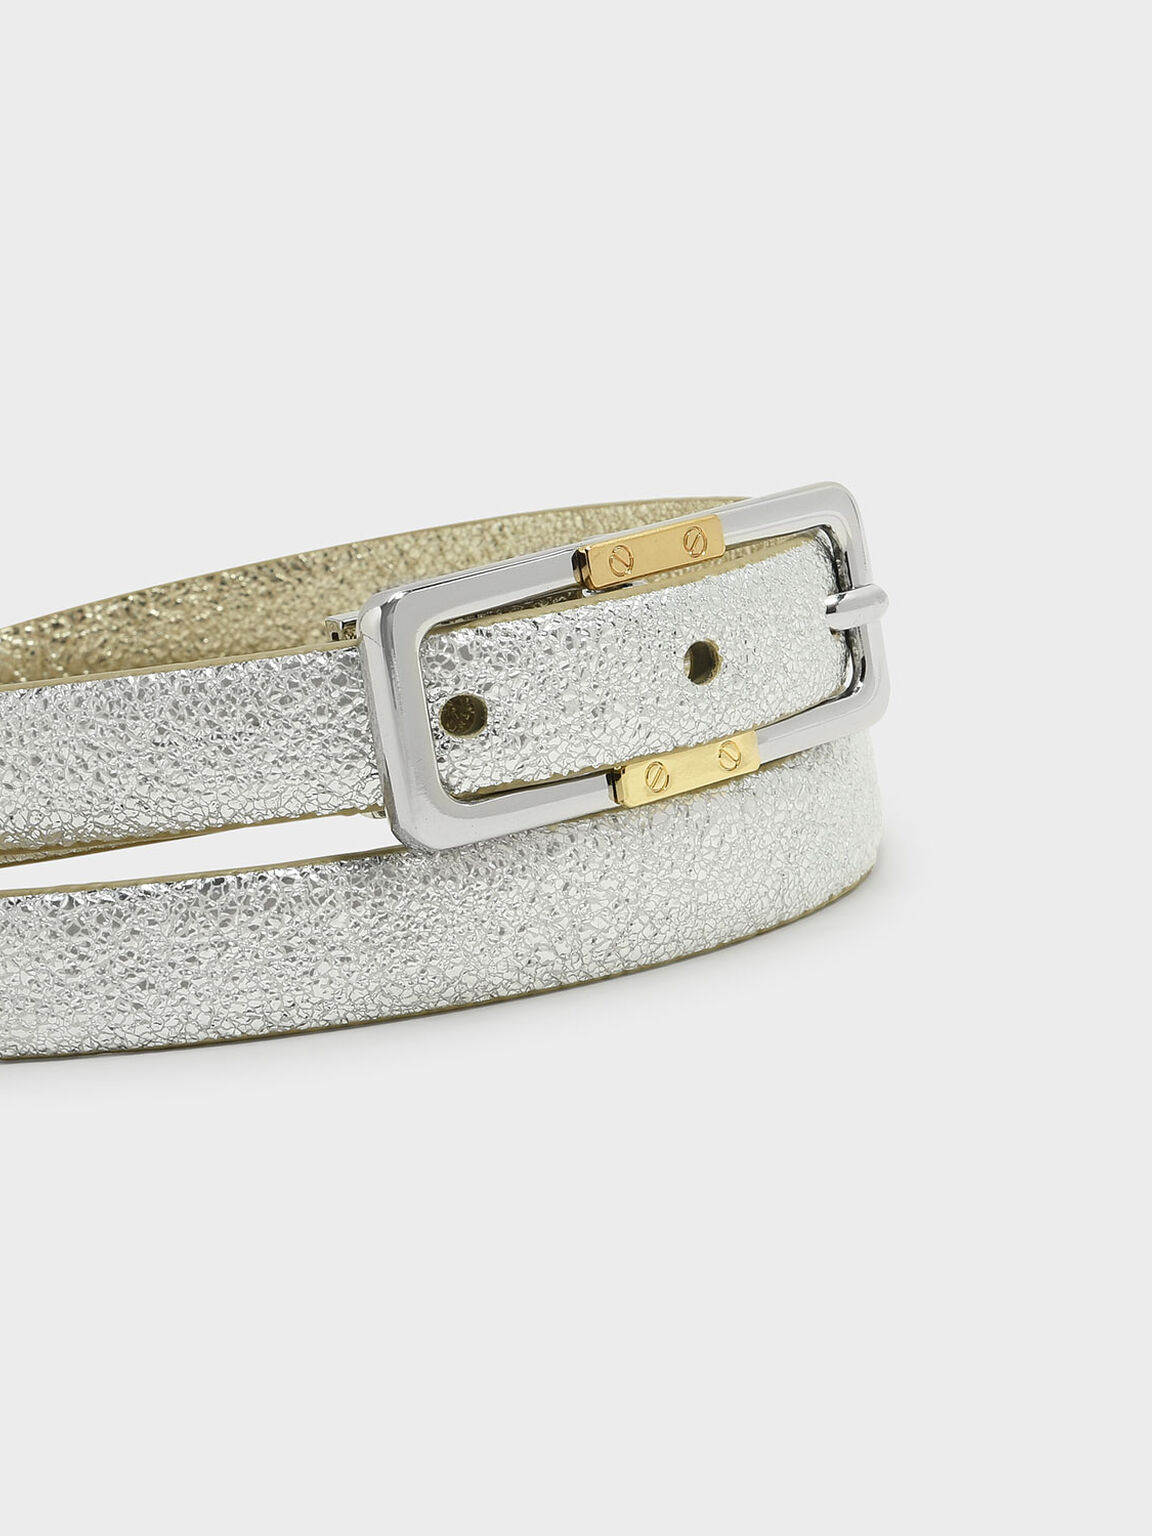 Buckle Detail Belt, Gold, hi-res